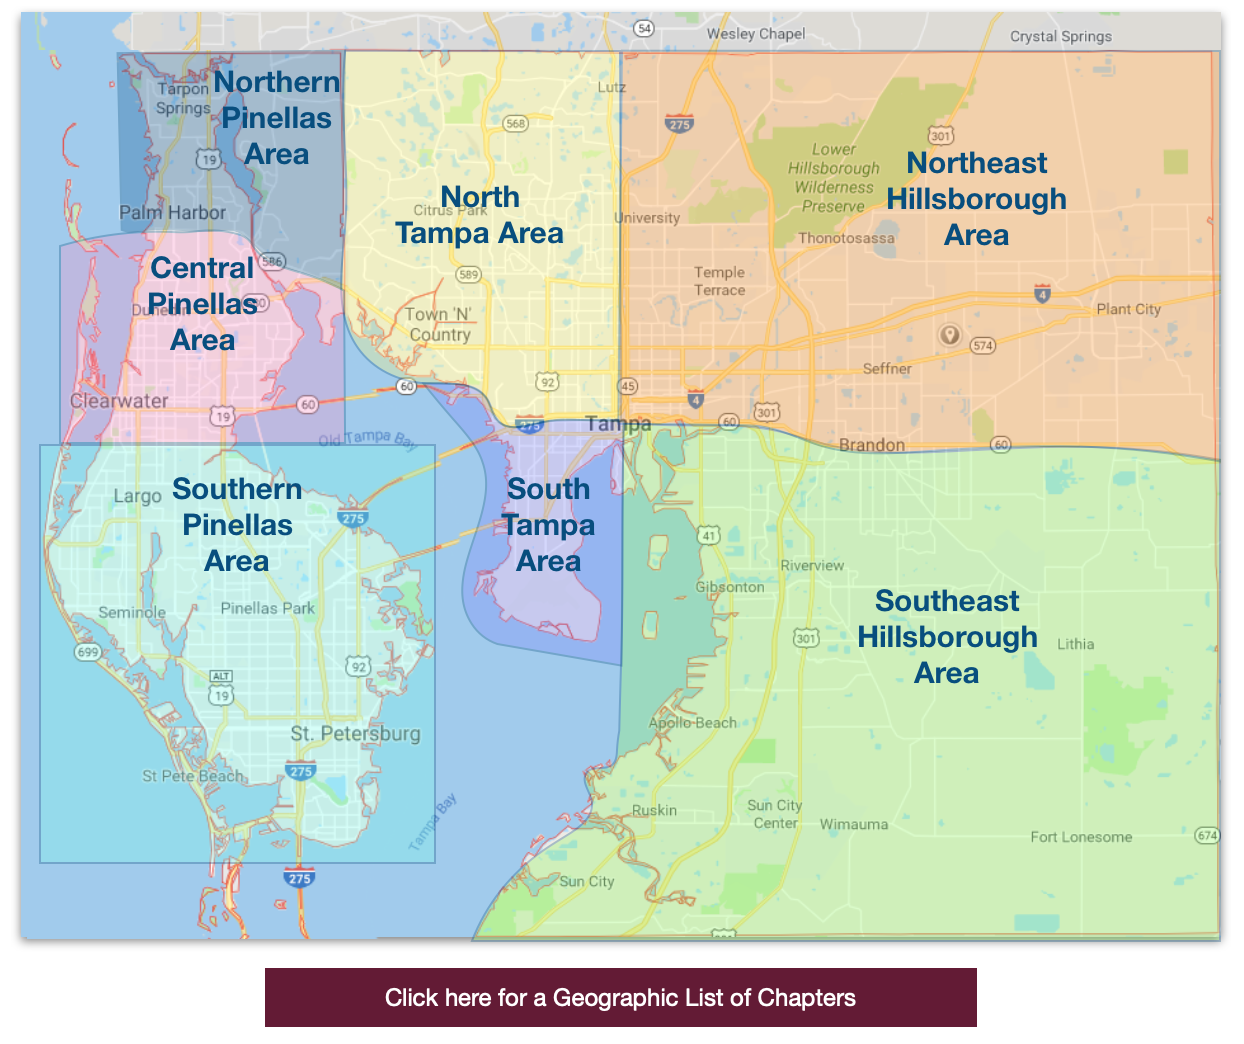 BNI Tampa Bay Region region serves Tampa, Clearwater, St. Pete, St. Petersburg, New Tampa, Brandon, Fishhawk within Hillsborough County and Pinellas County.